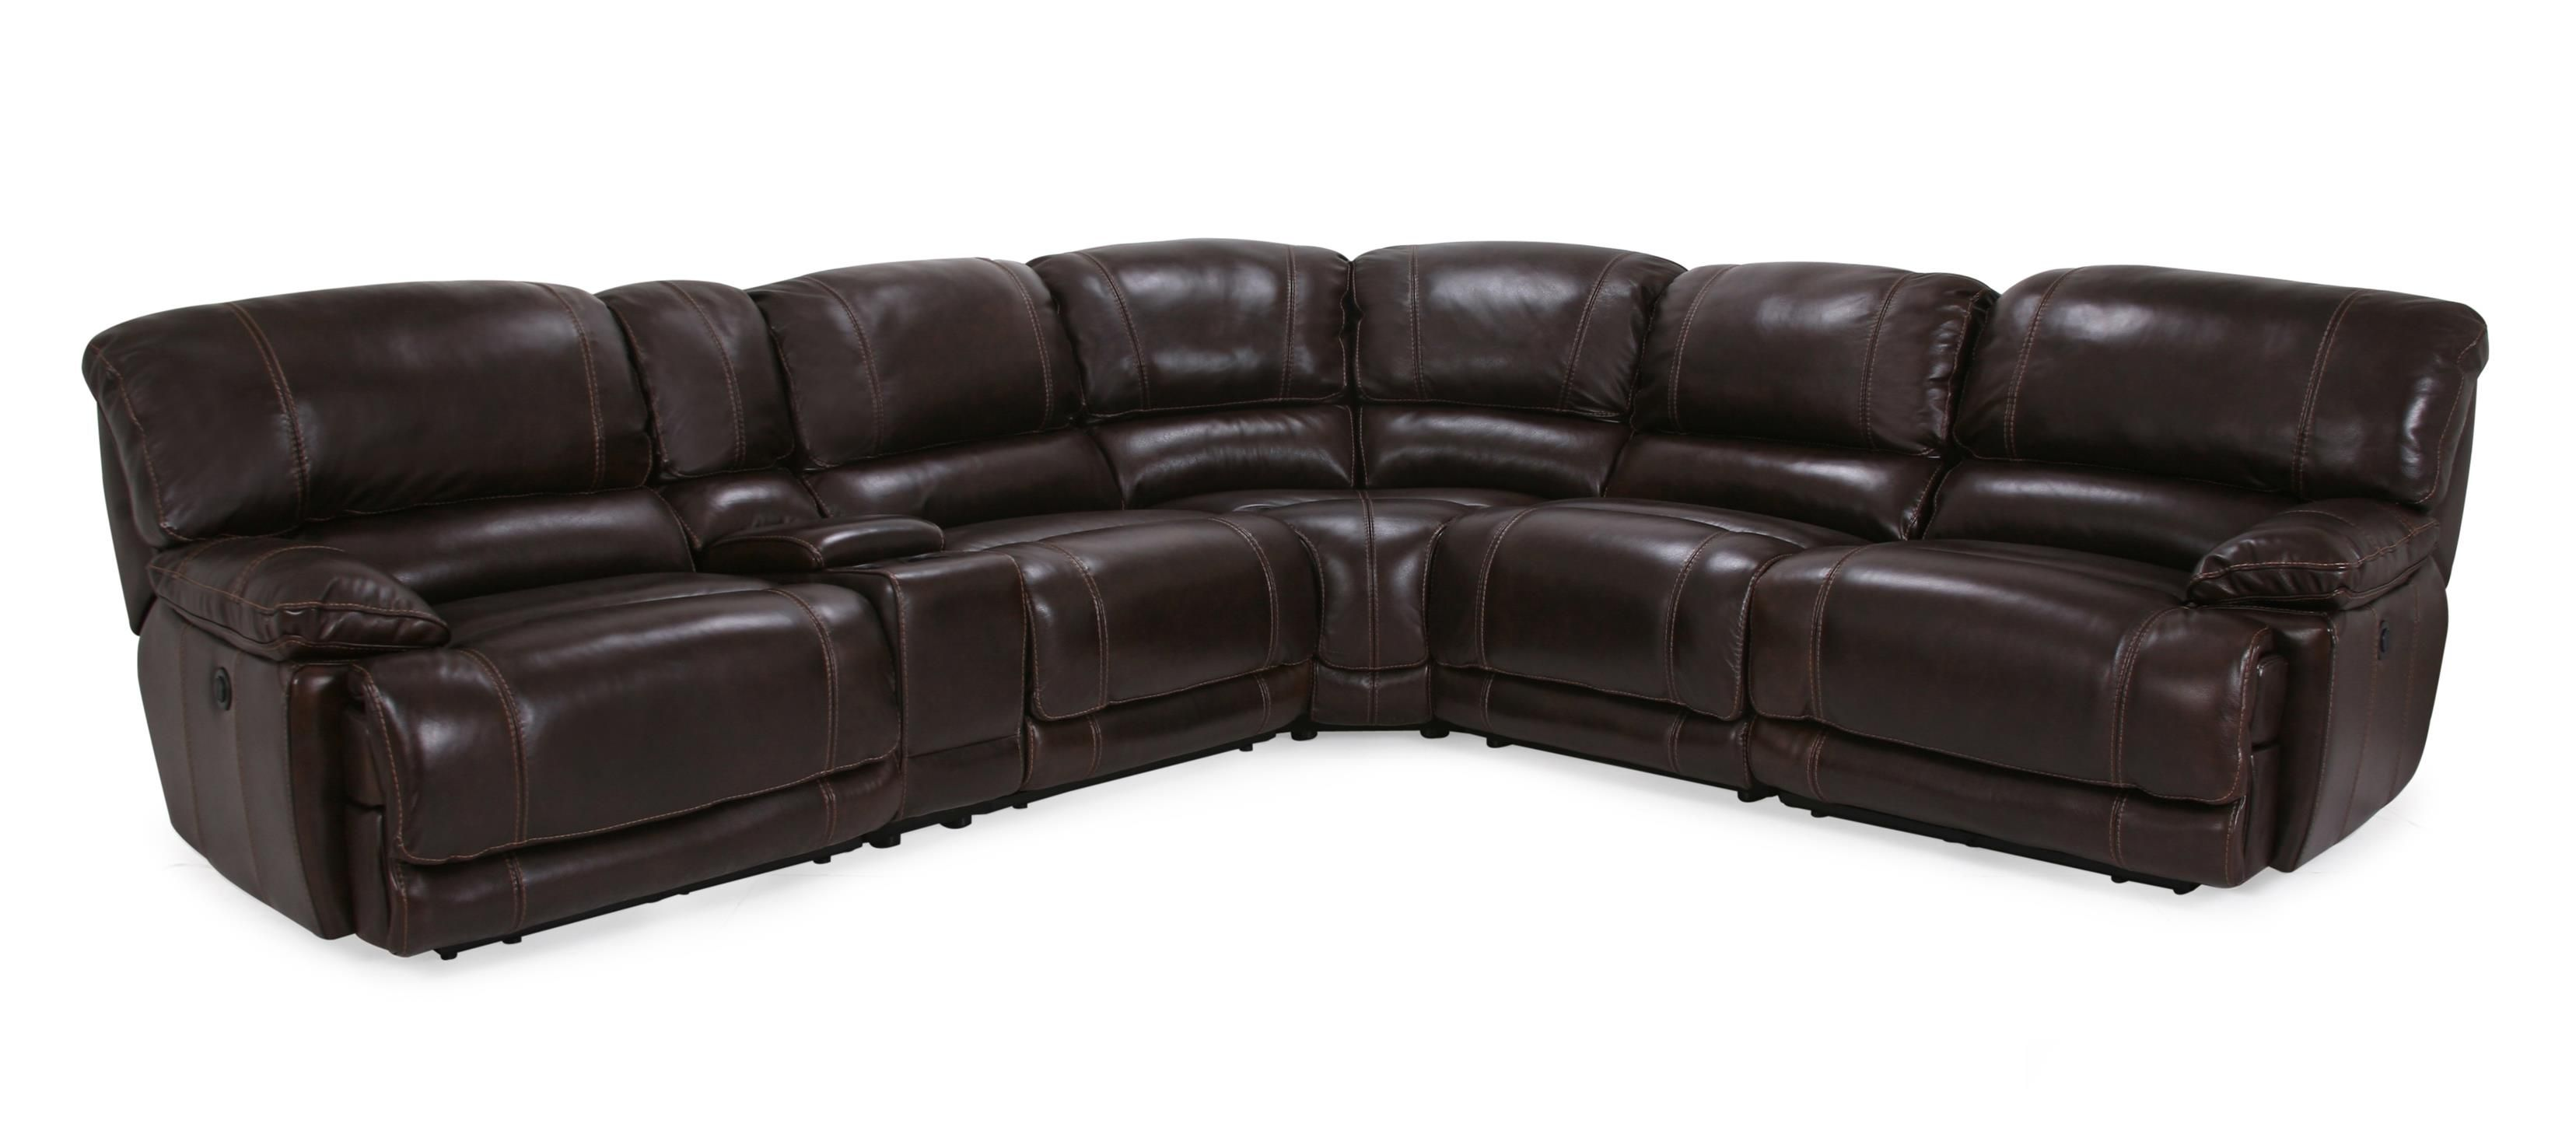 X8698m Casual Reclining Sectional Sofa By Cheers Sofa At Conlin S